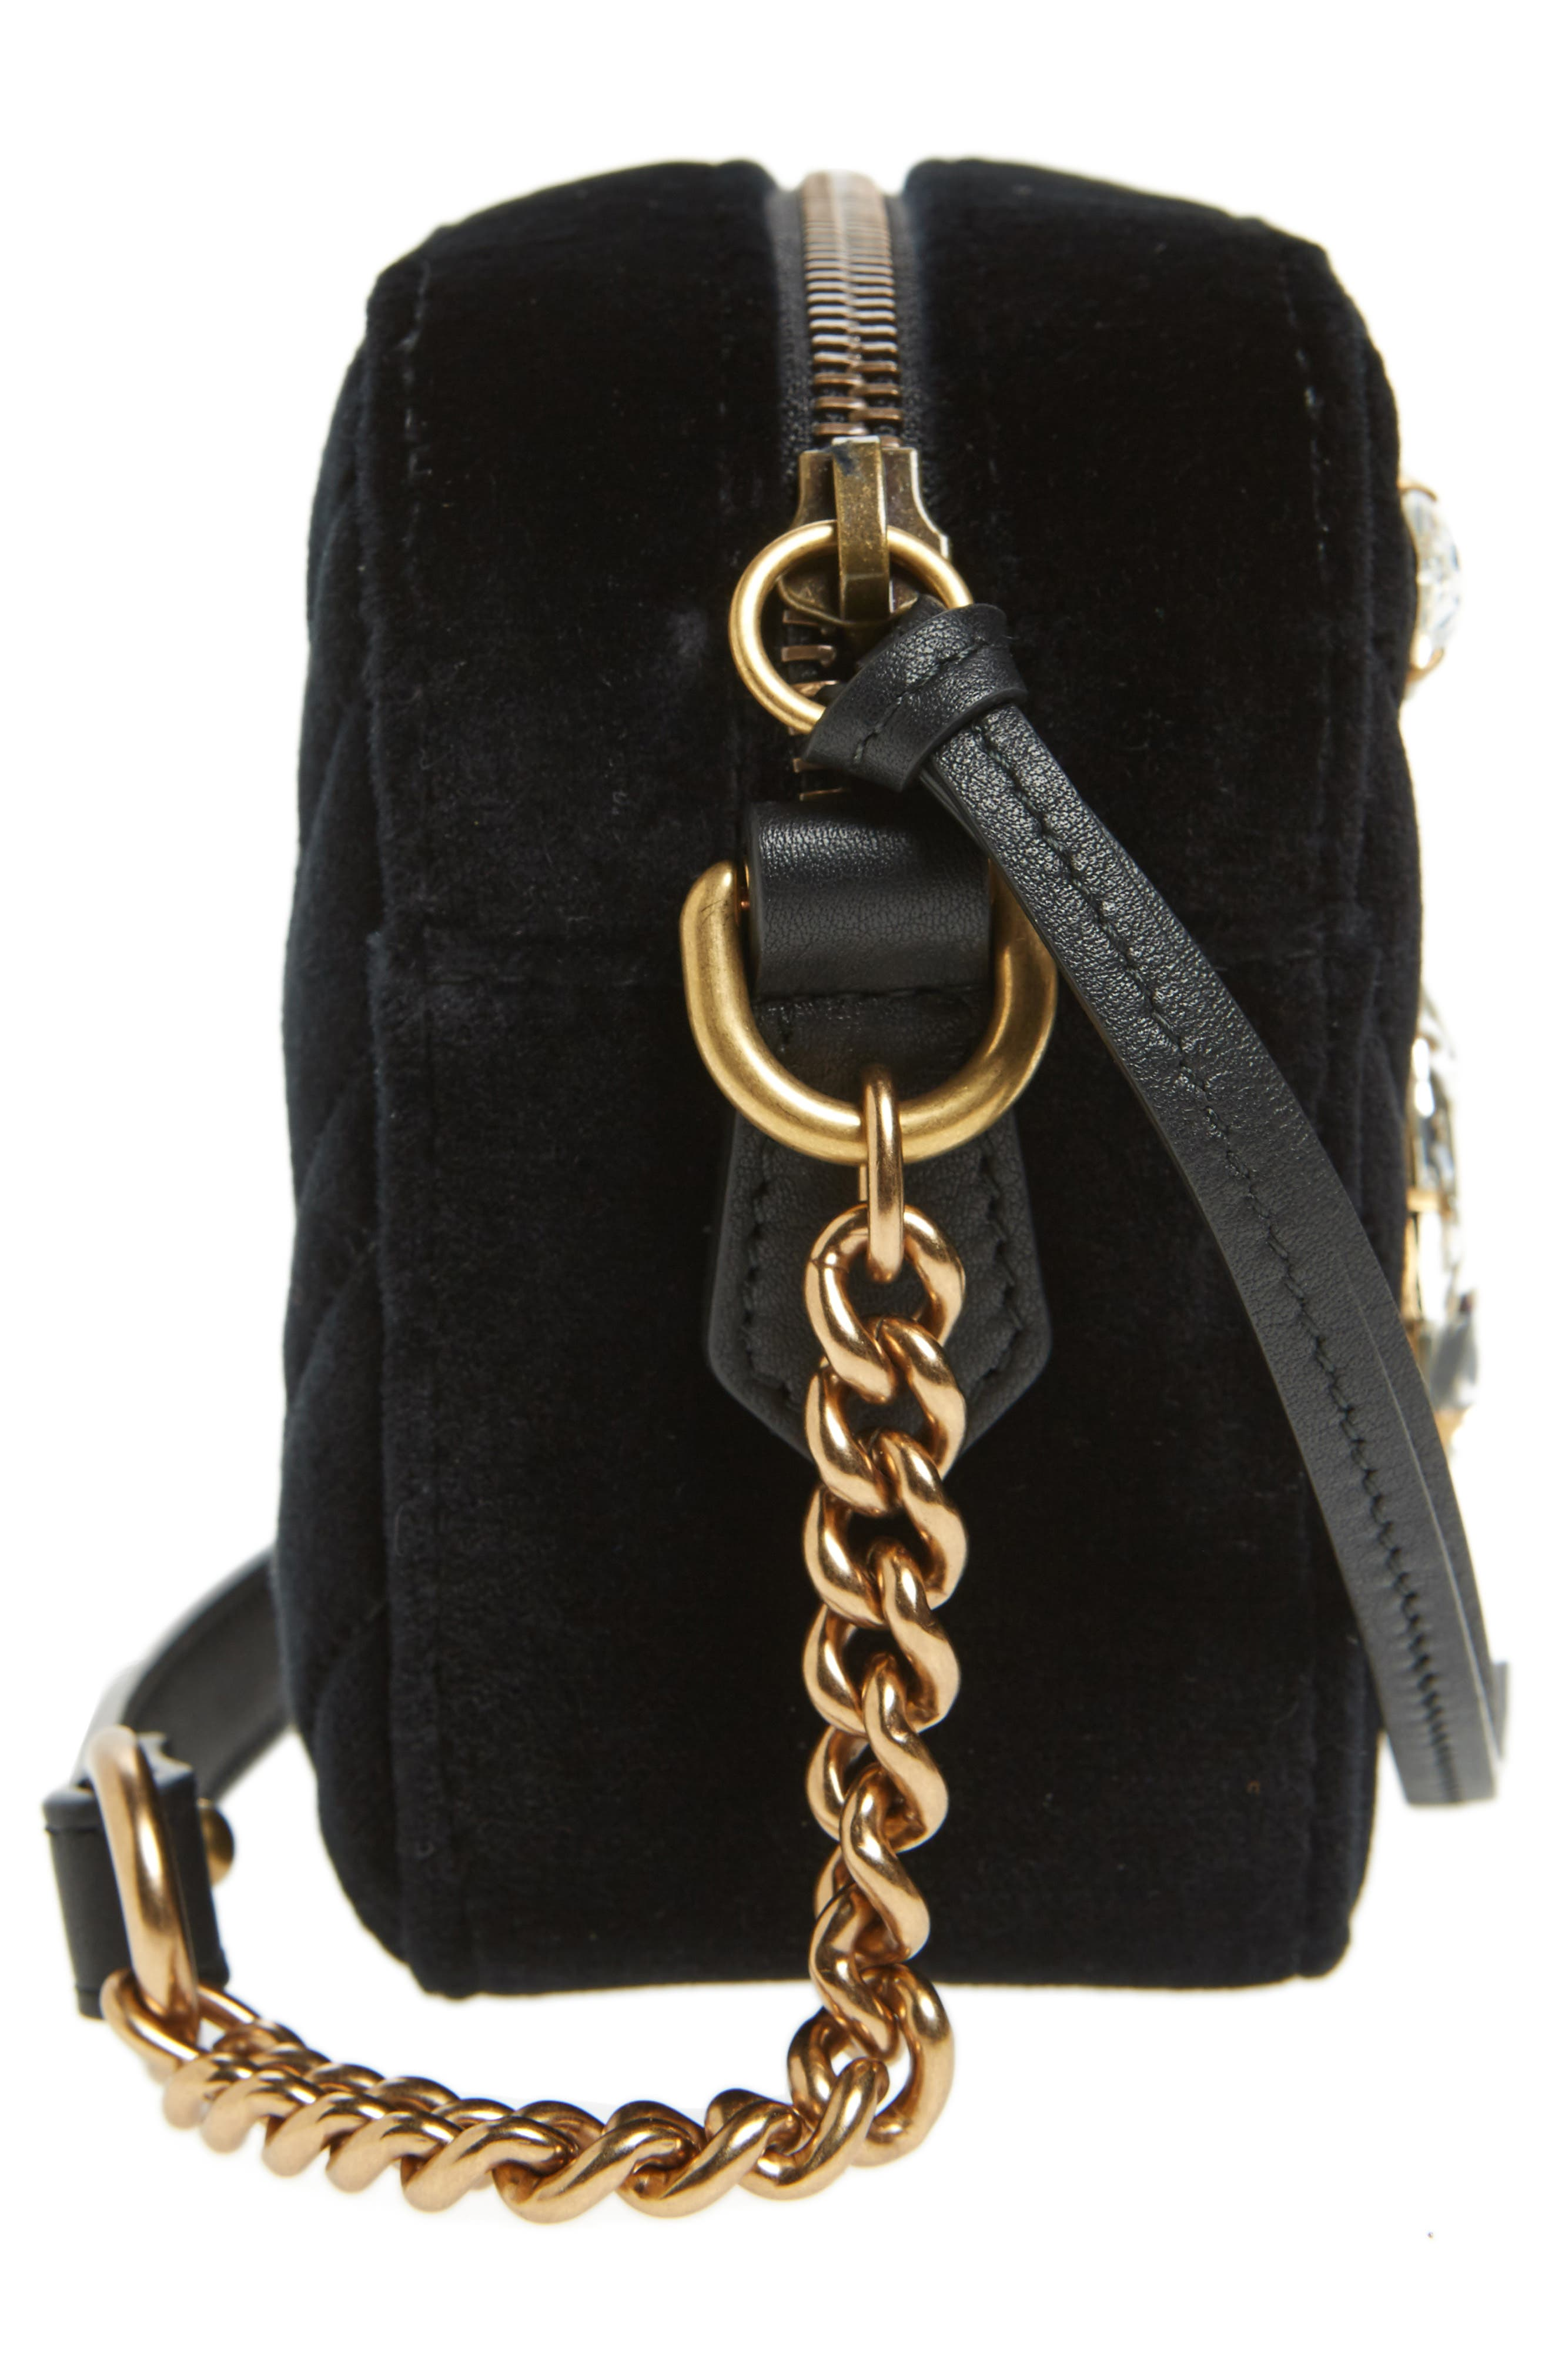 GG Marmont Crystal Matelassé Quilted Velvet Crossbody Bag,                             Alternate thumbnail 5, color,                             Nero/ Crystal